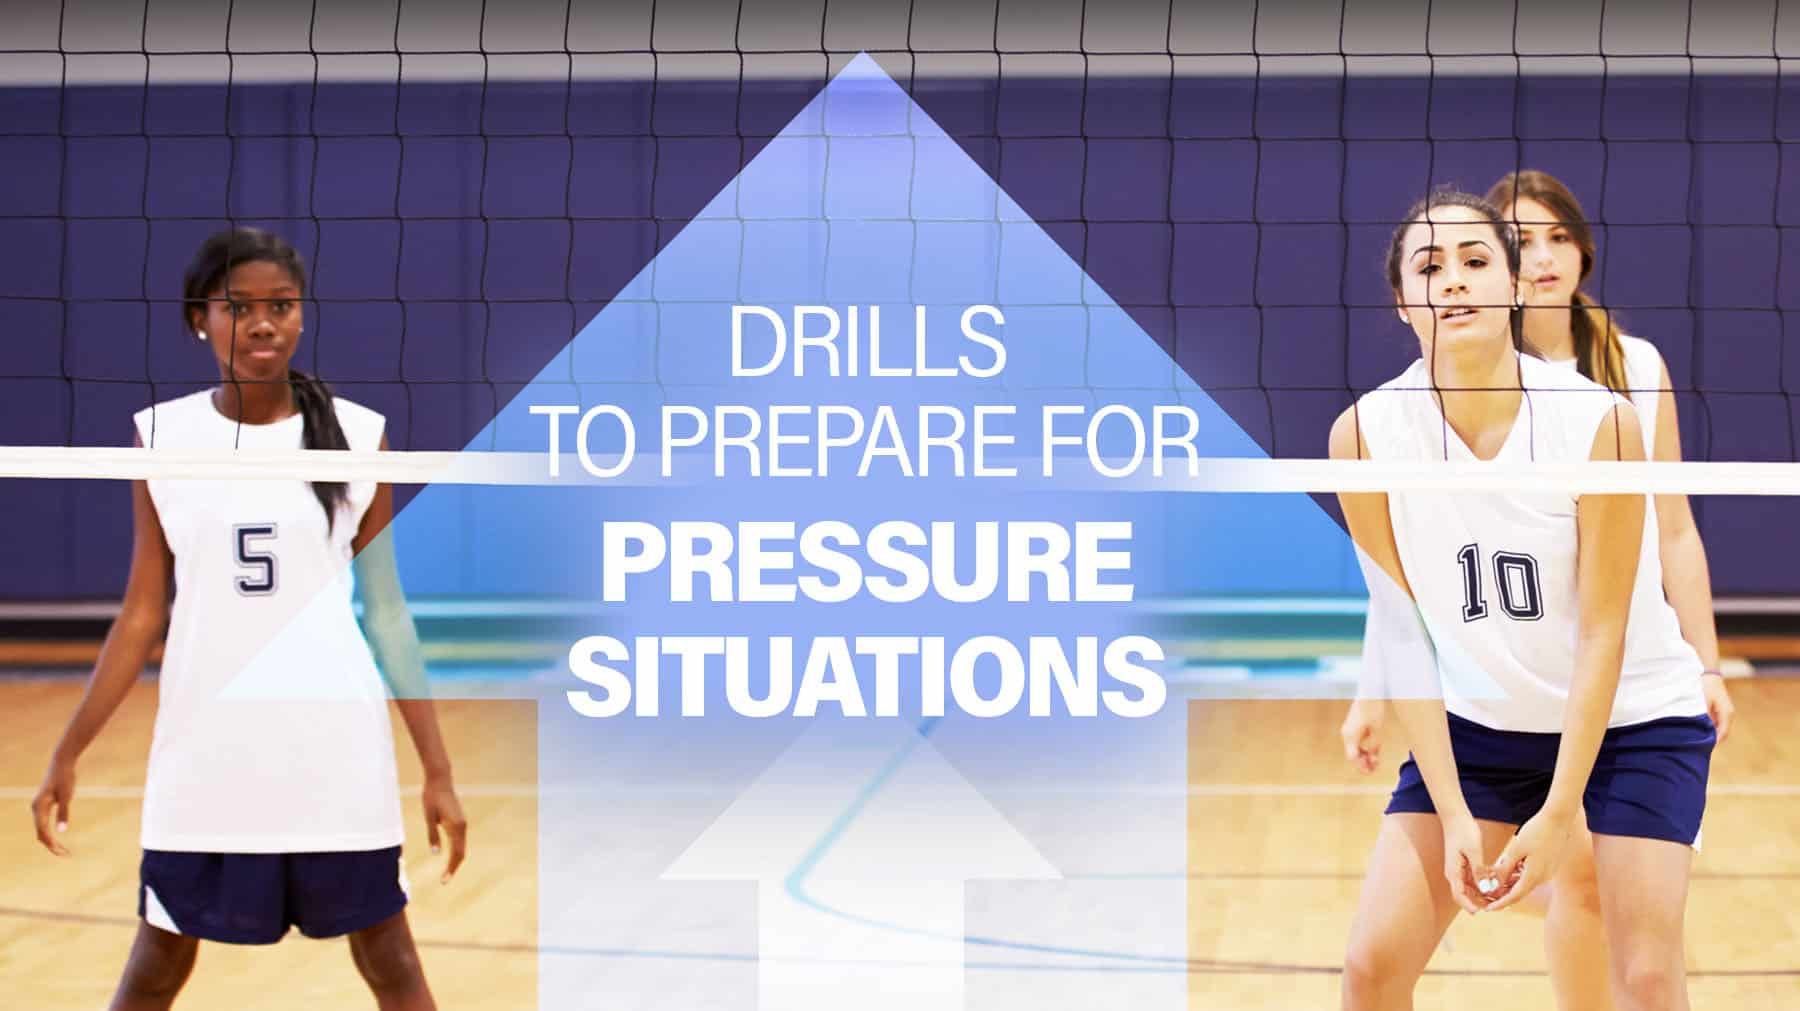 Drills to prepare for pressure situations